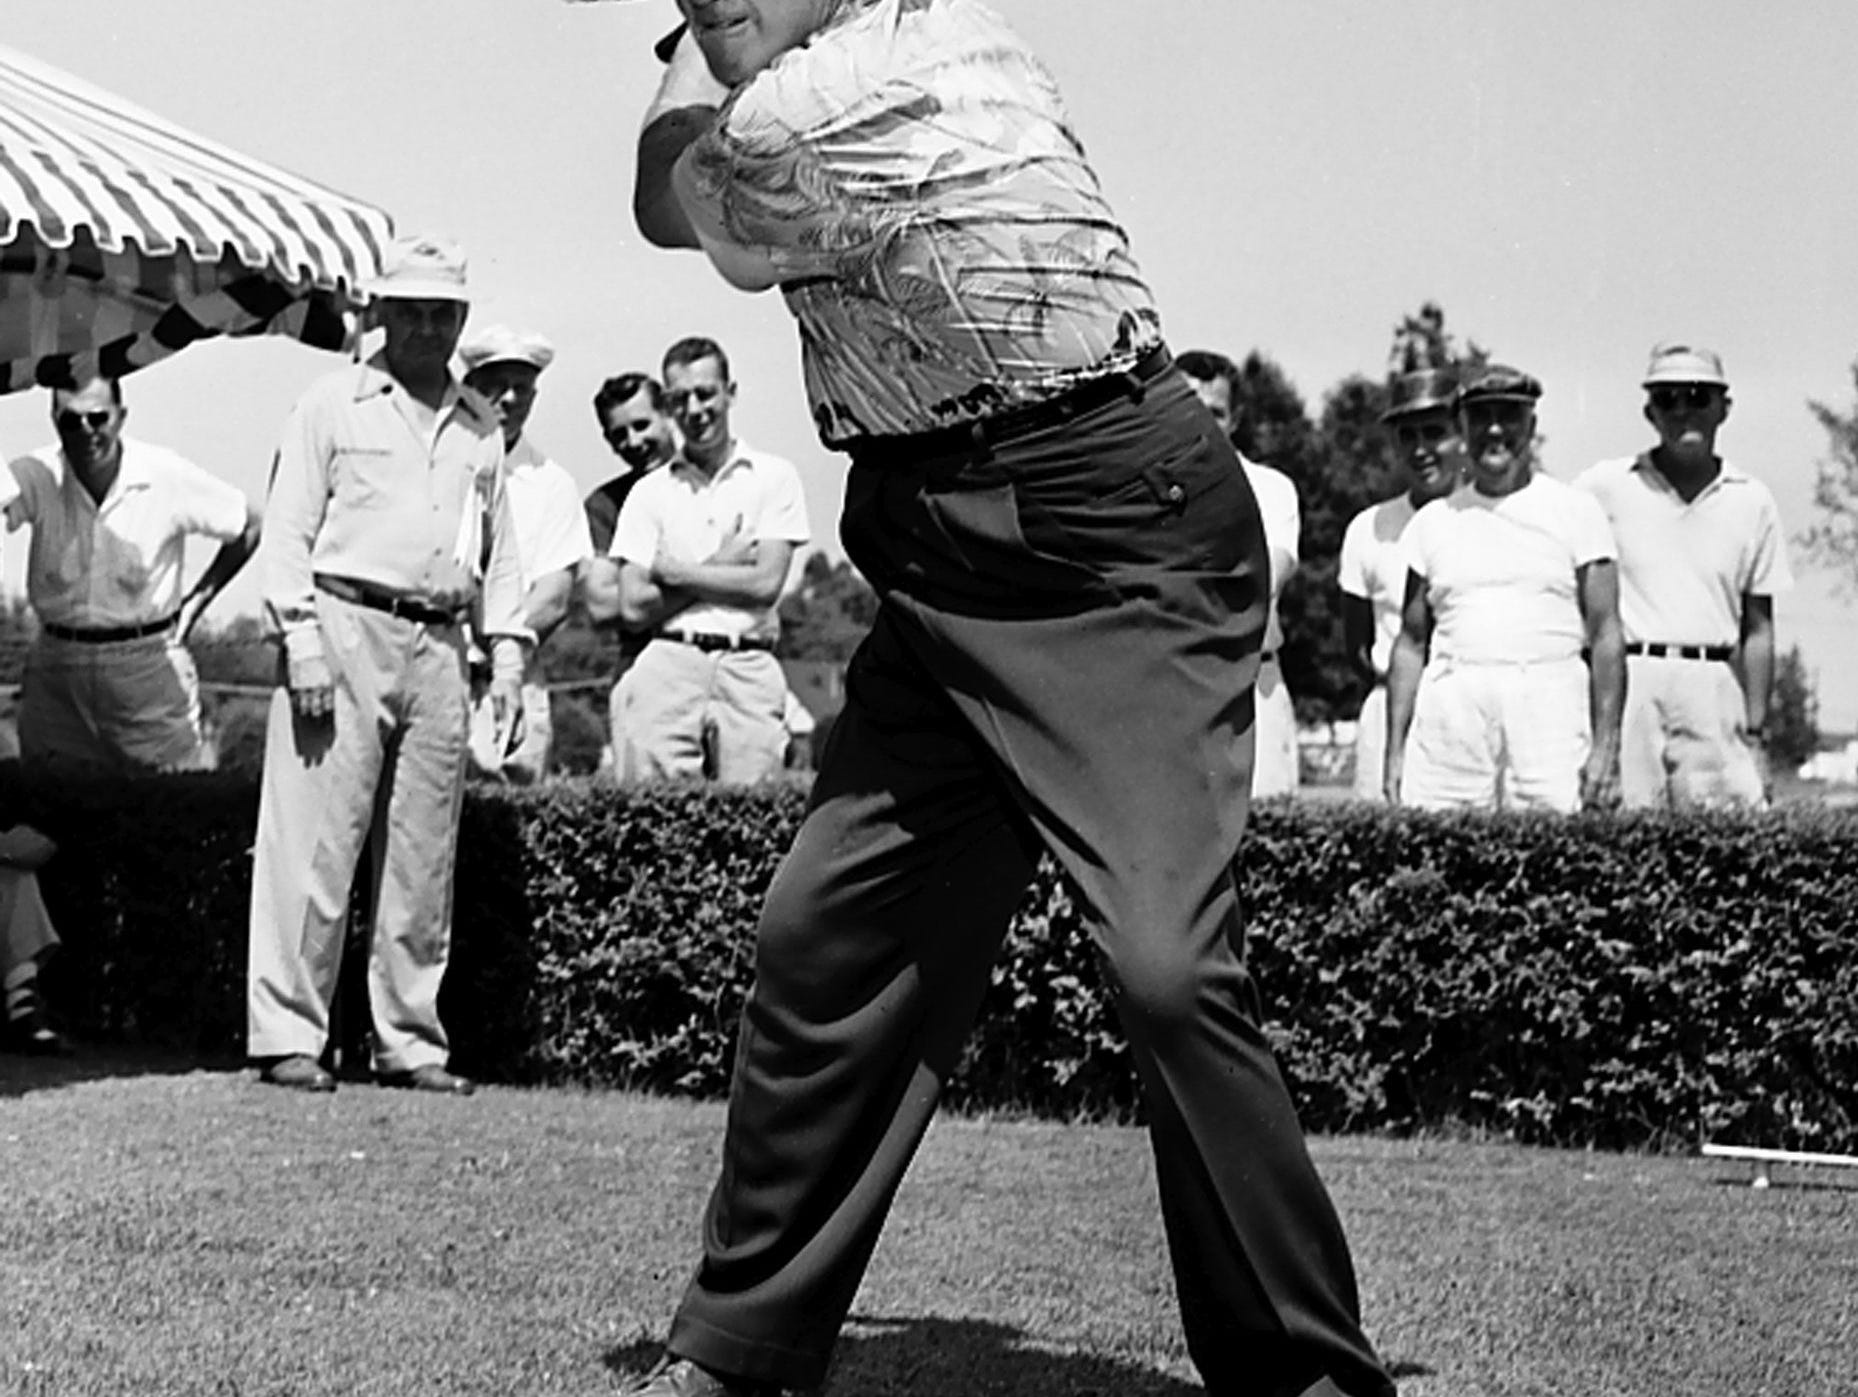 Hall of Fame baseball player and broadcaster Dizzy Dean, dressed quite appropriately, winds up for a three-club pitch at Colonial Country Club in July 1953. He was in Memphis for the Colonial Invitational golf tournament.